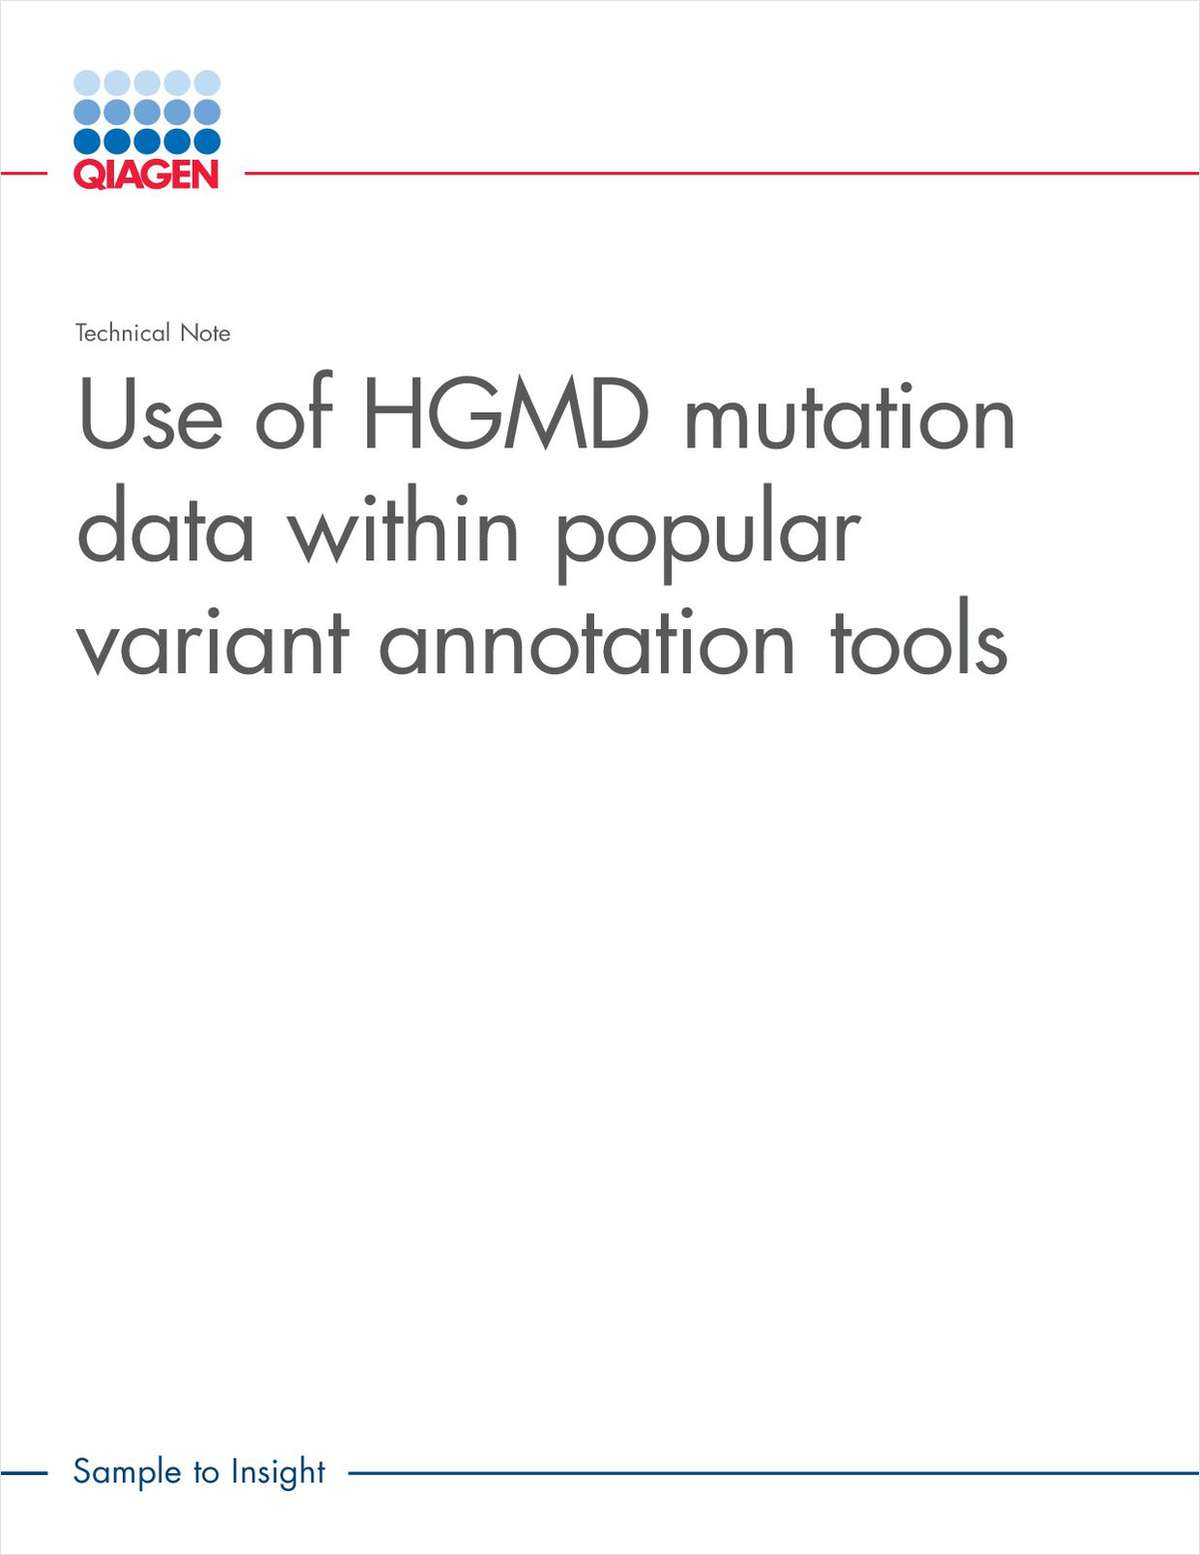 Use of HGMD Mutation Data Within Popular Variant Annotation Tools